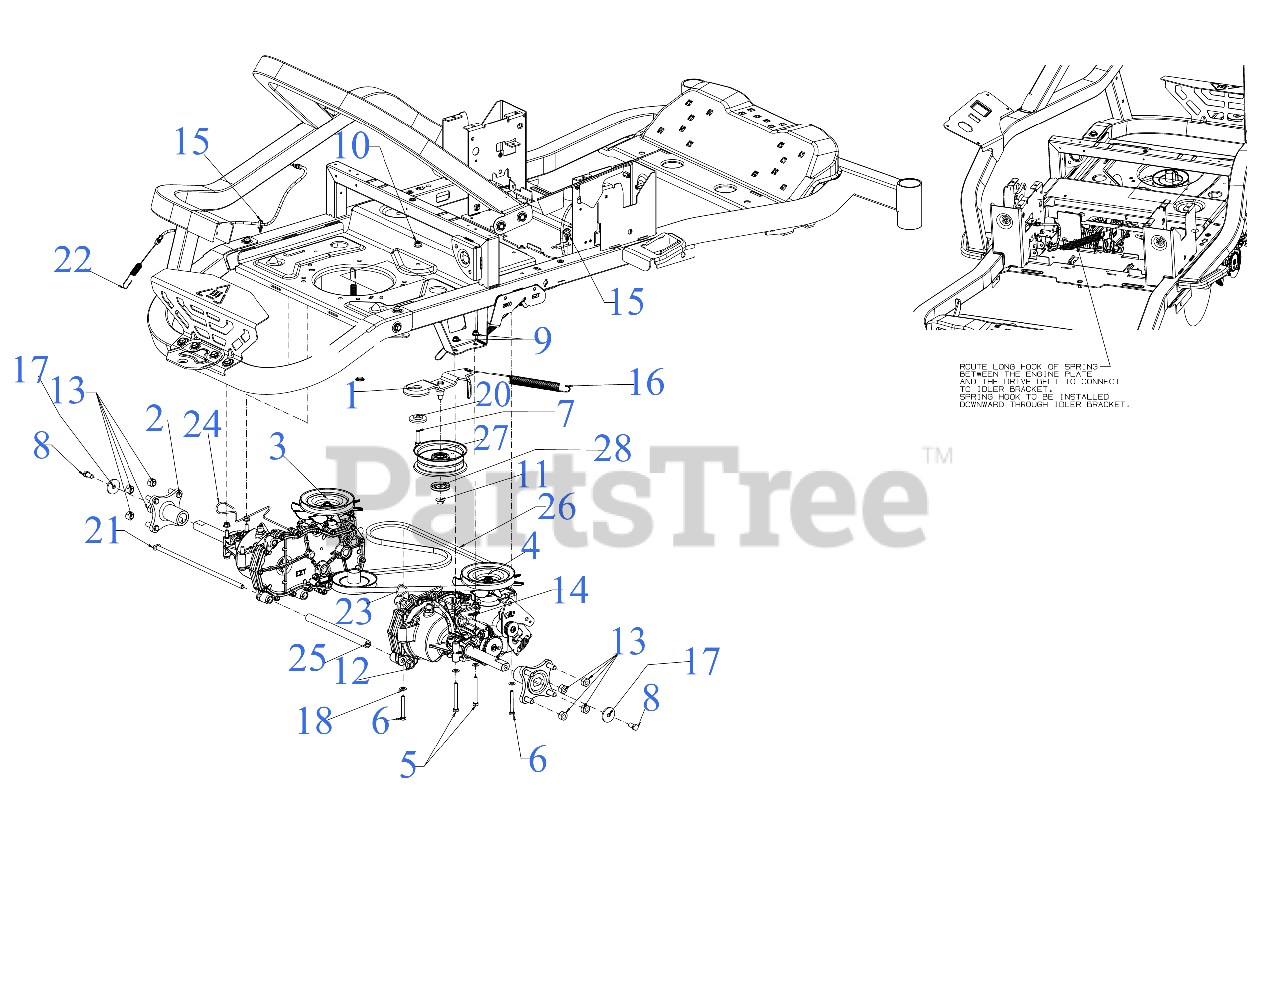 Cub Cadet Parts on the Drive Diagram for ZT1-50 KW FAB